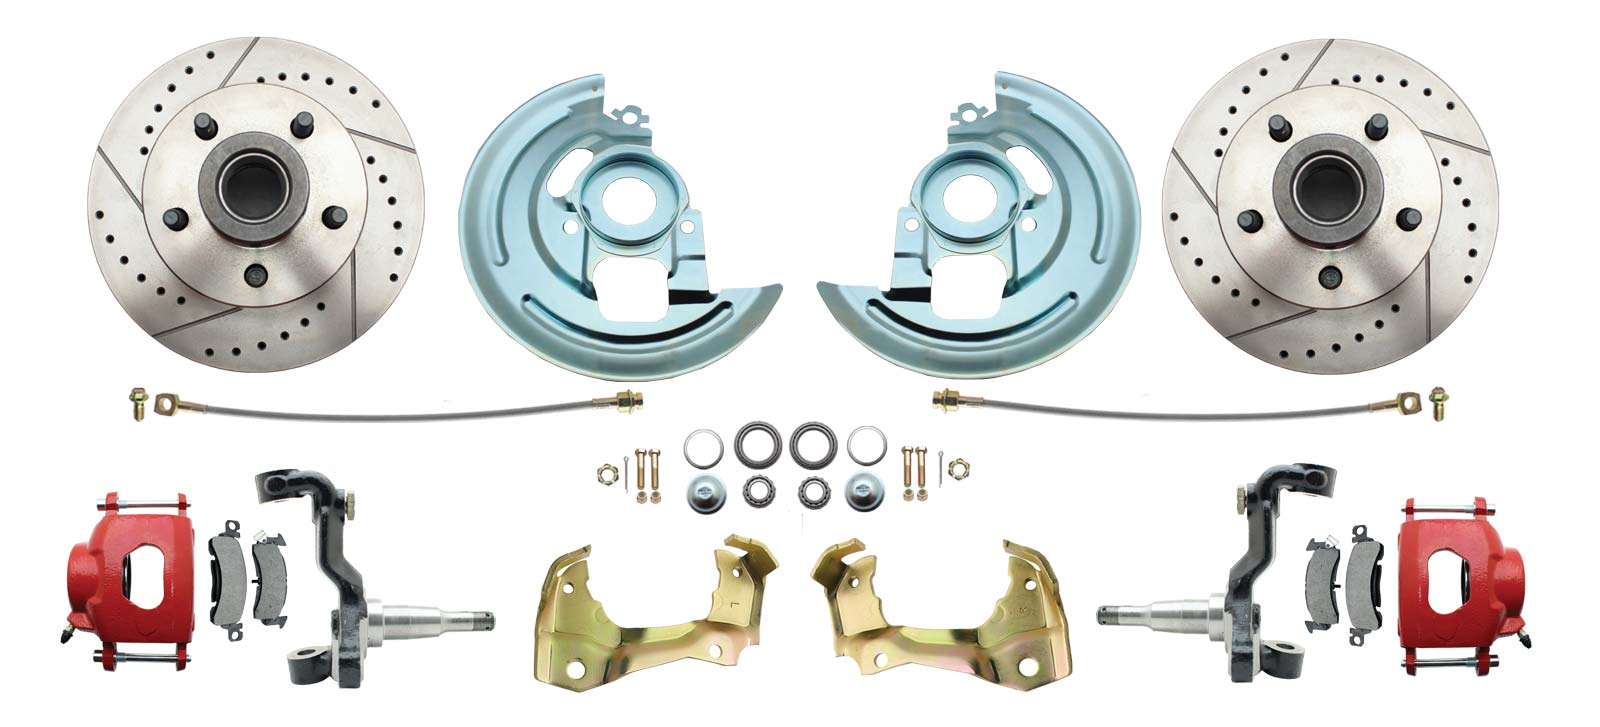 1967-1969 Camaro/ Firebird & 1968-1974 Chevy Nova Stock Height Front Disc Brake Kit W/ Drilled & Slotted Rotors Red Calipers